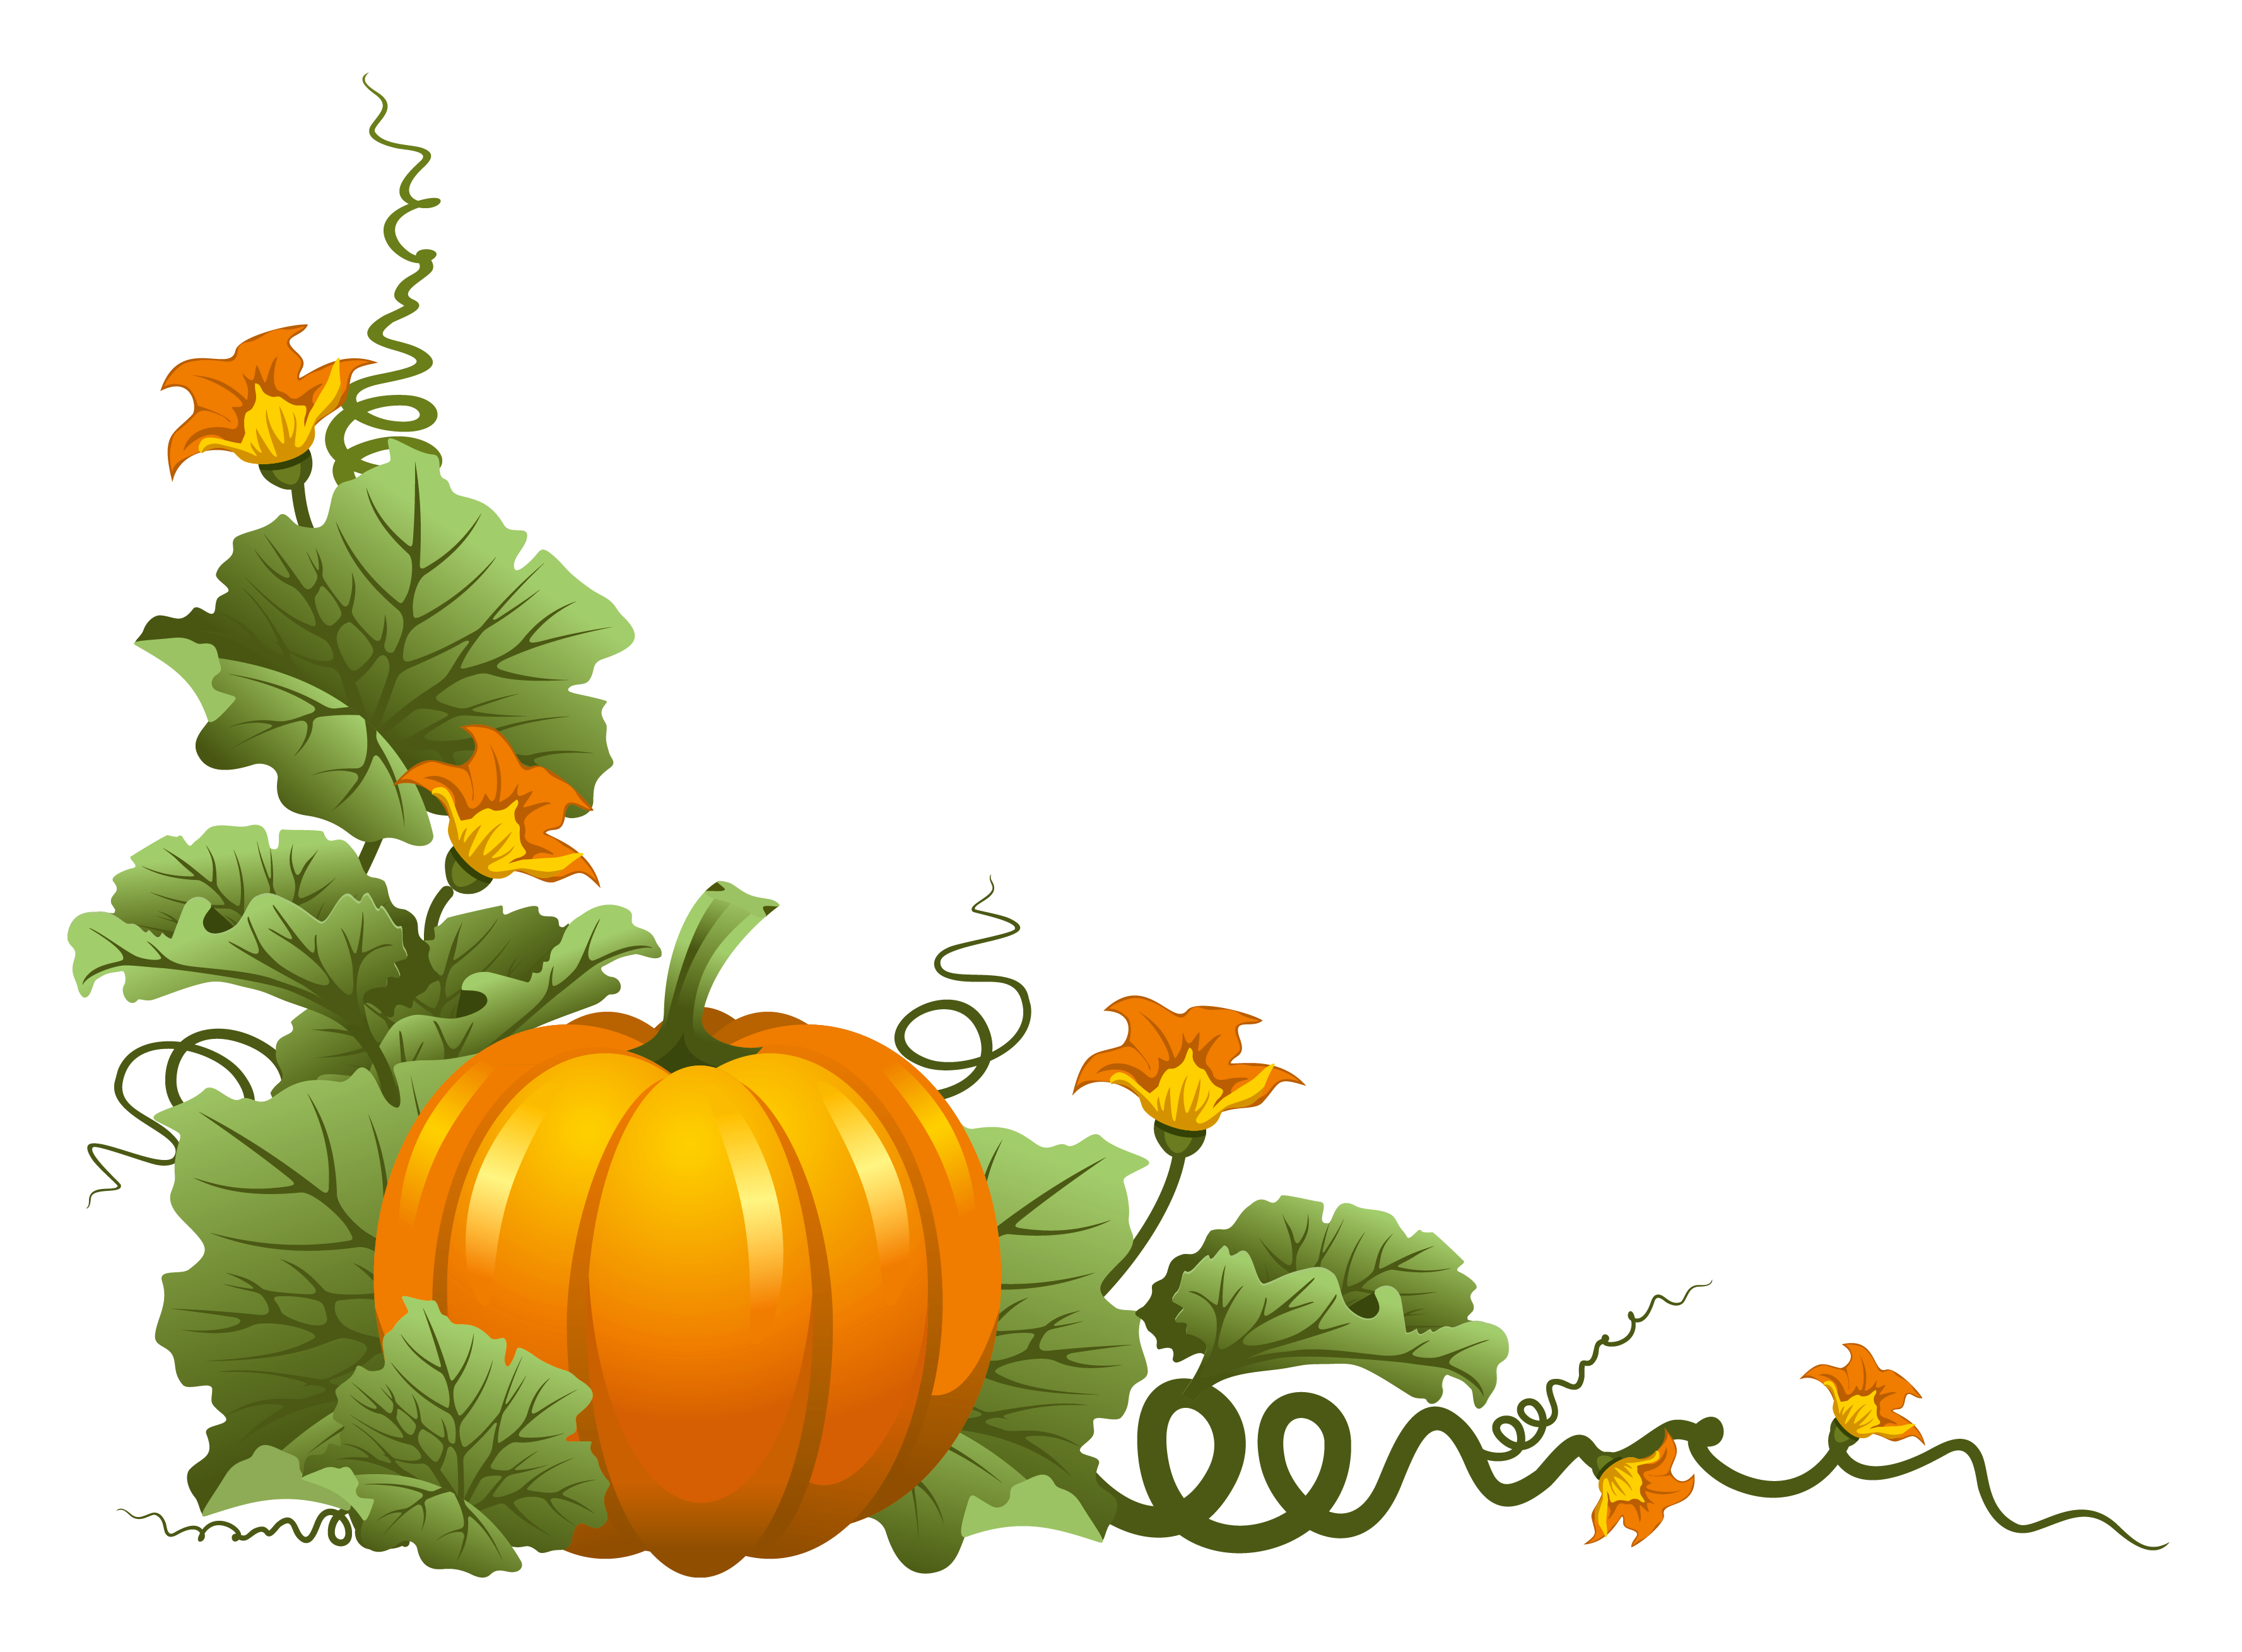 Images clipart thanksgiving poem jpg transparent download Pumpkin Decor PNG Clipart | ősz/ fall | Pinterest | Clipart gallery ... jpg transparent download